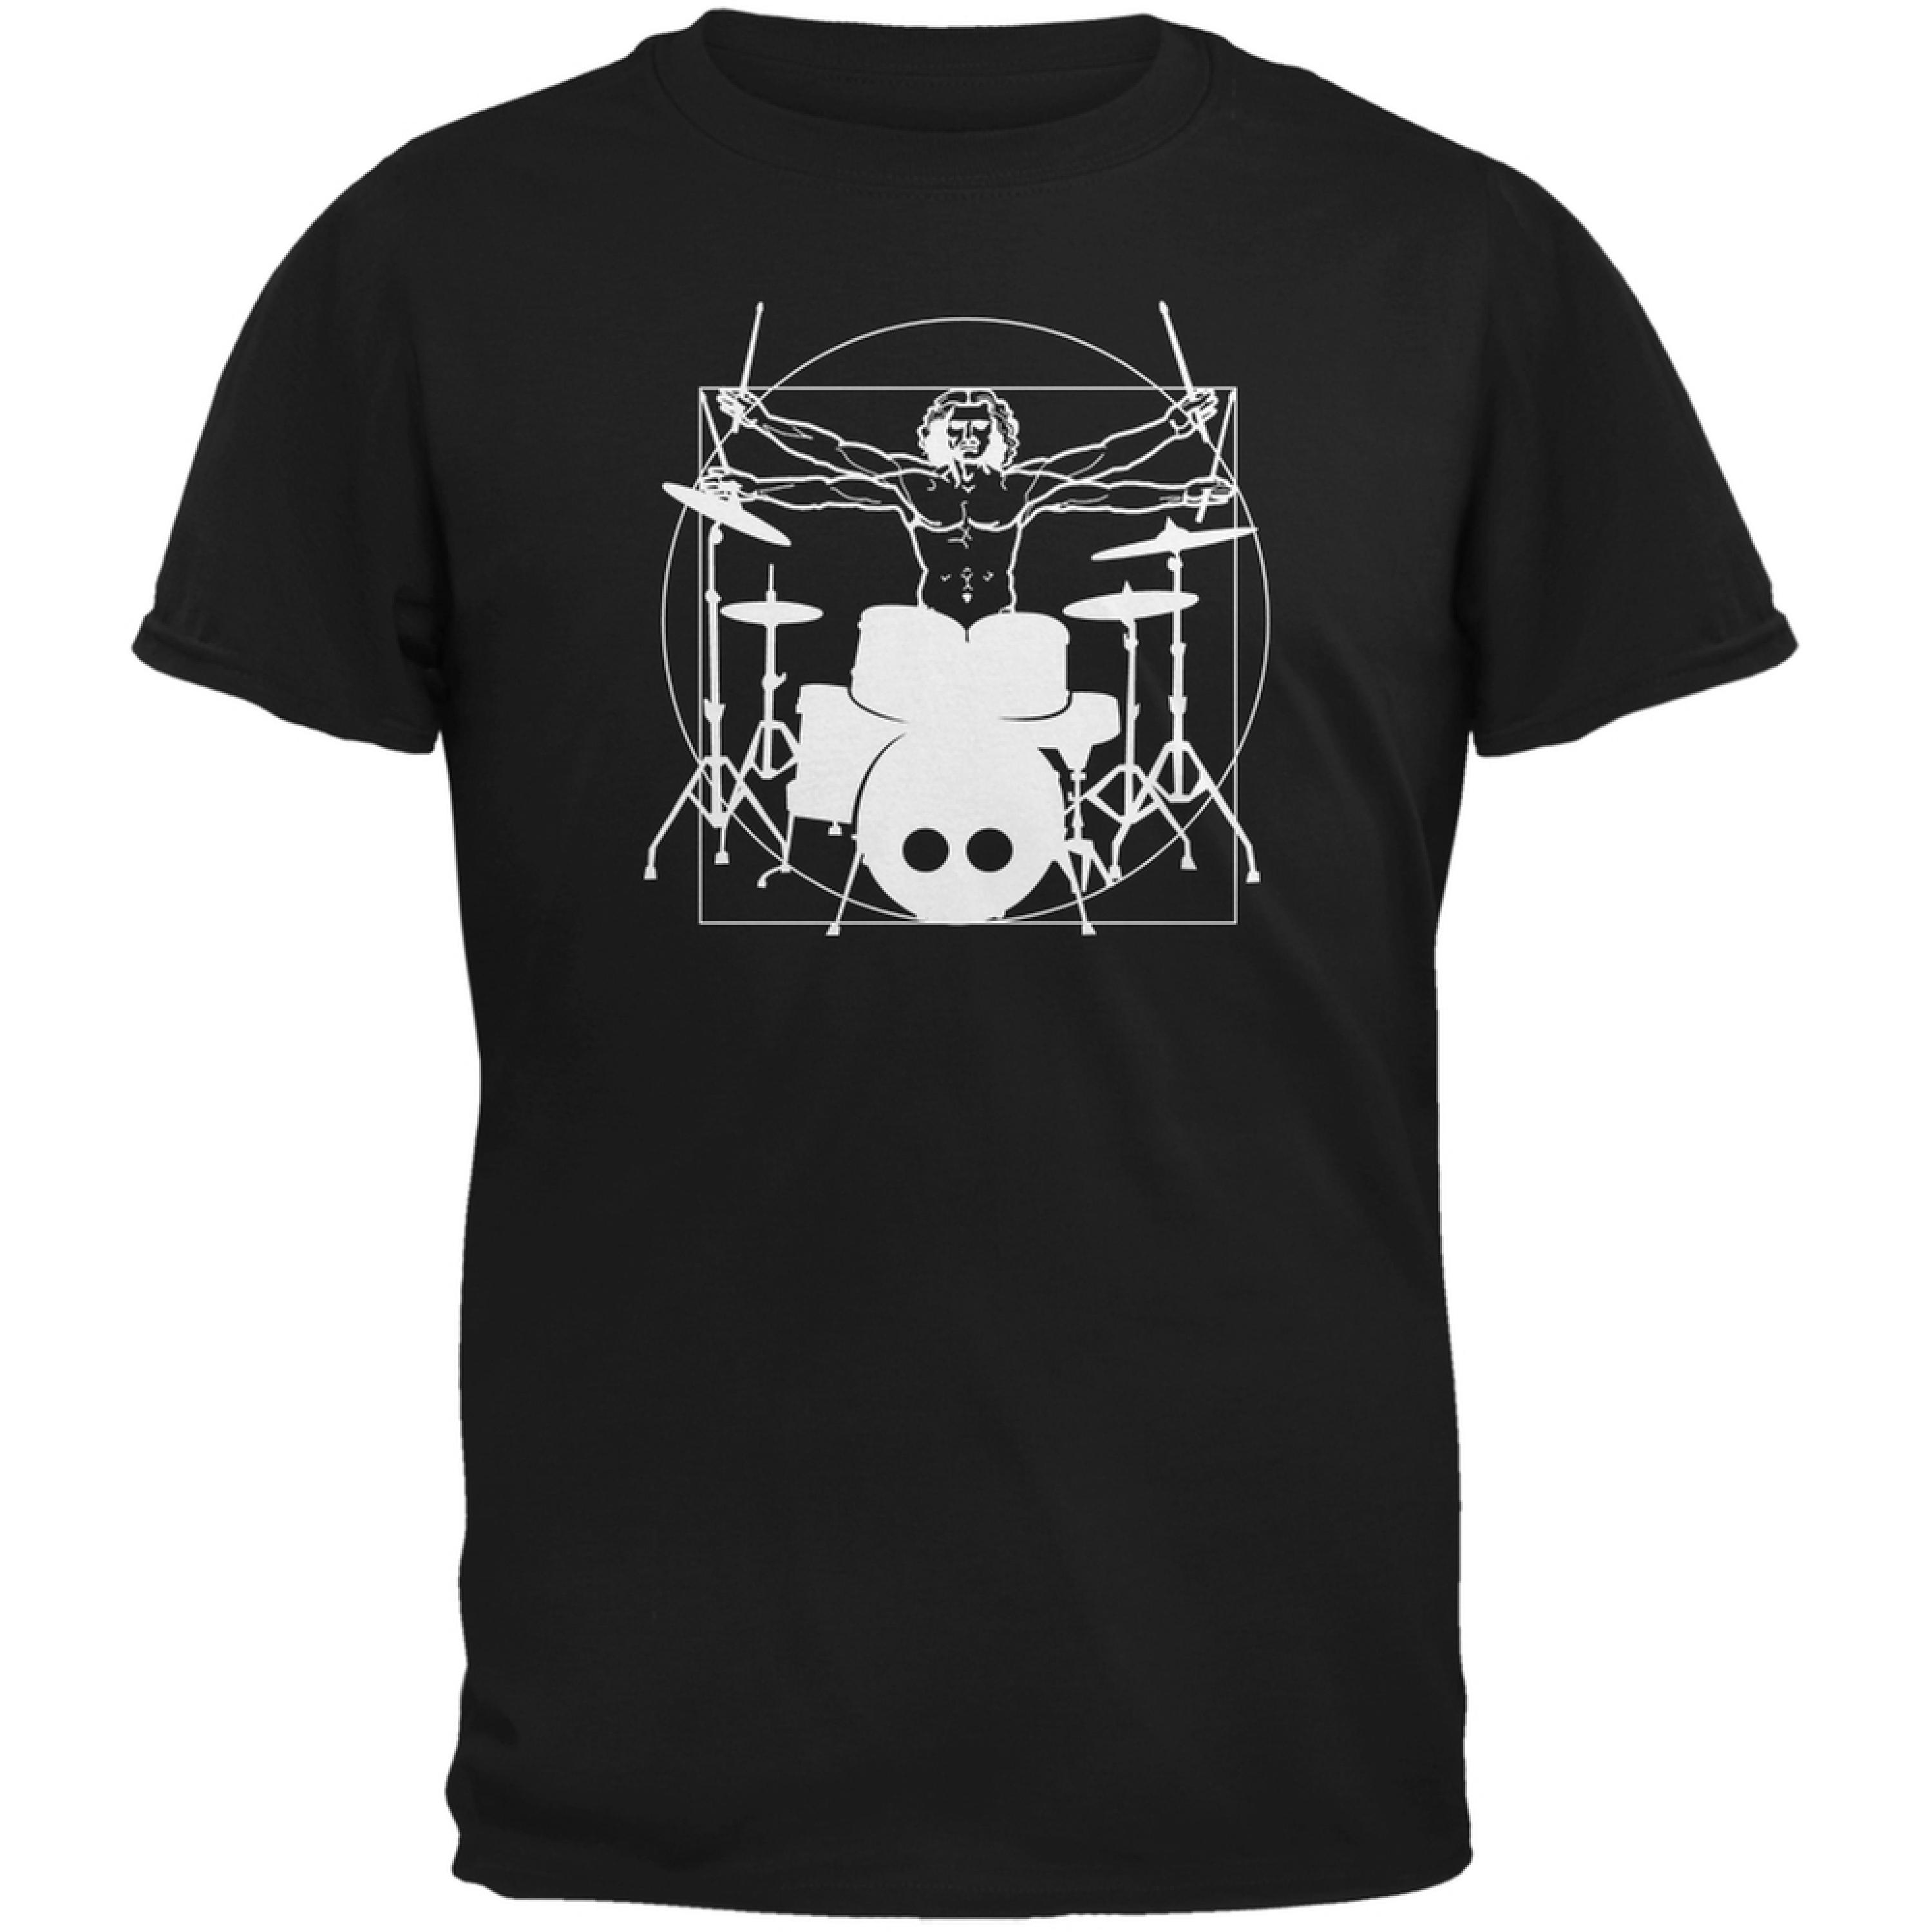 Vitruvian Man Drummer Black Adult T-Shirt